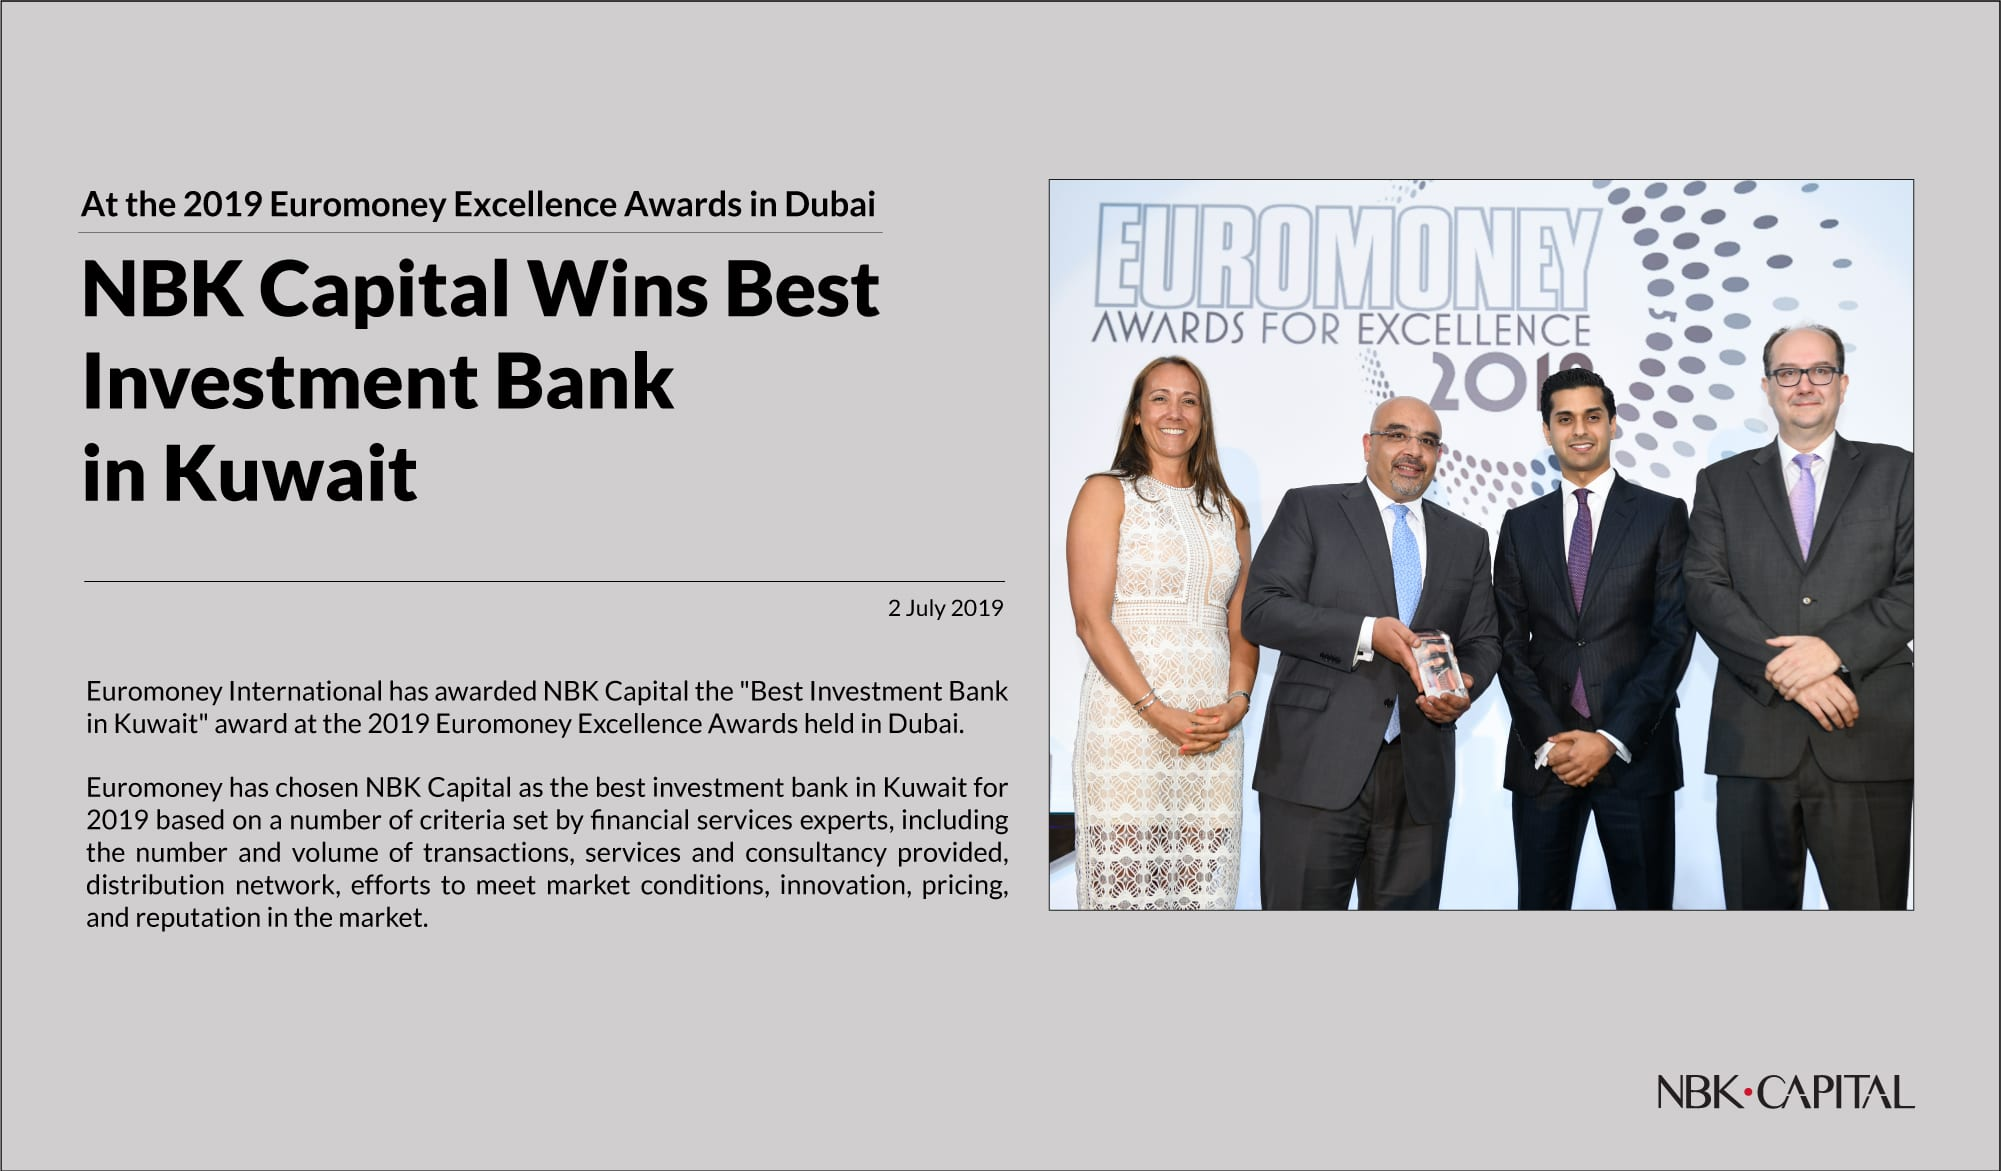 NBK Capital Wins Best Investment Bank in Kuwait